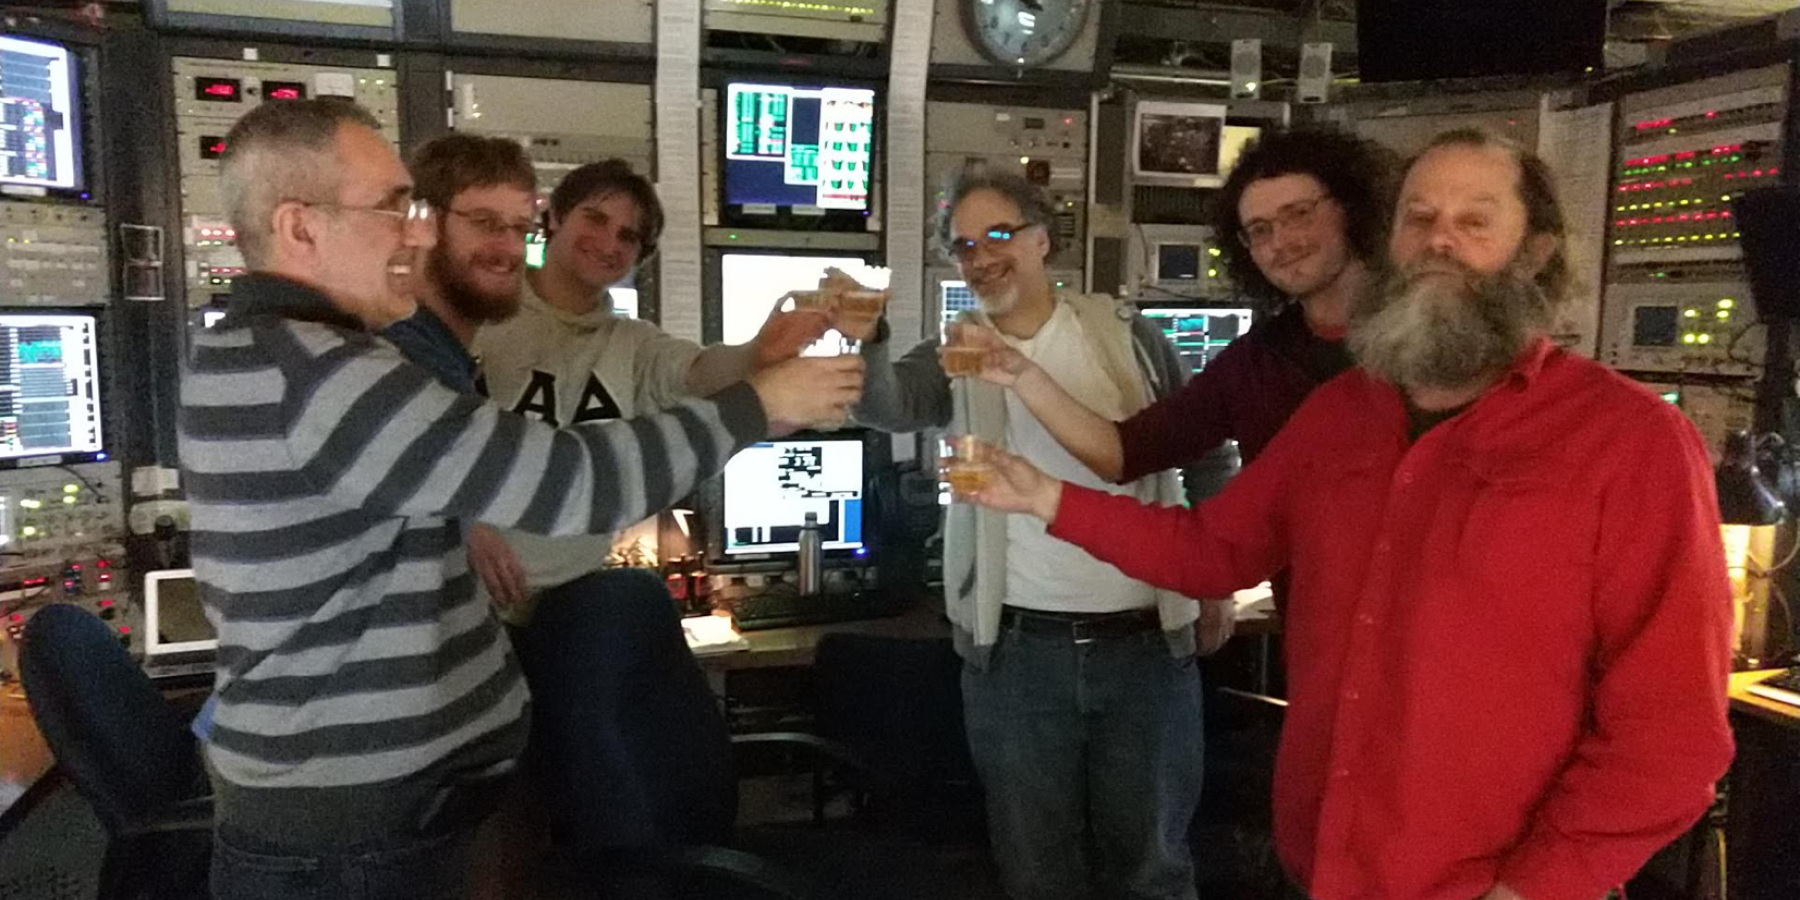 Team celebrates first turn of positrons on March 6, 2019